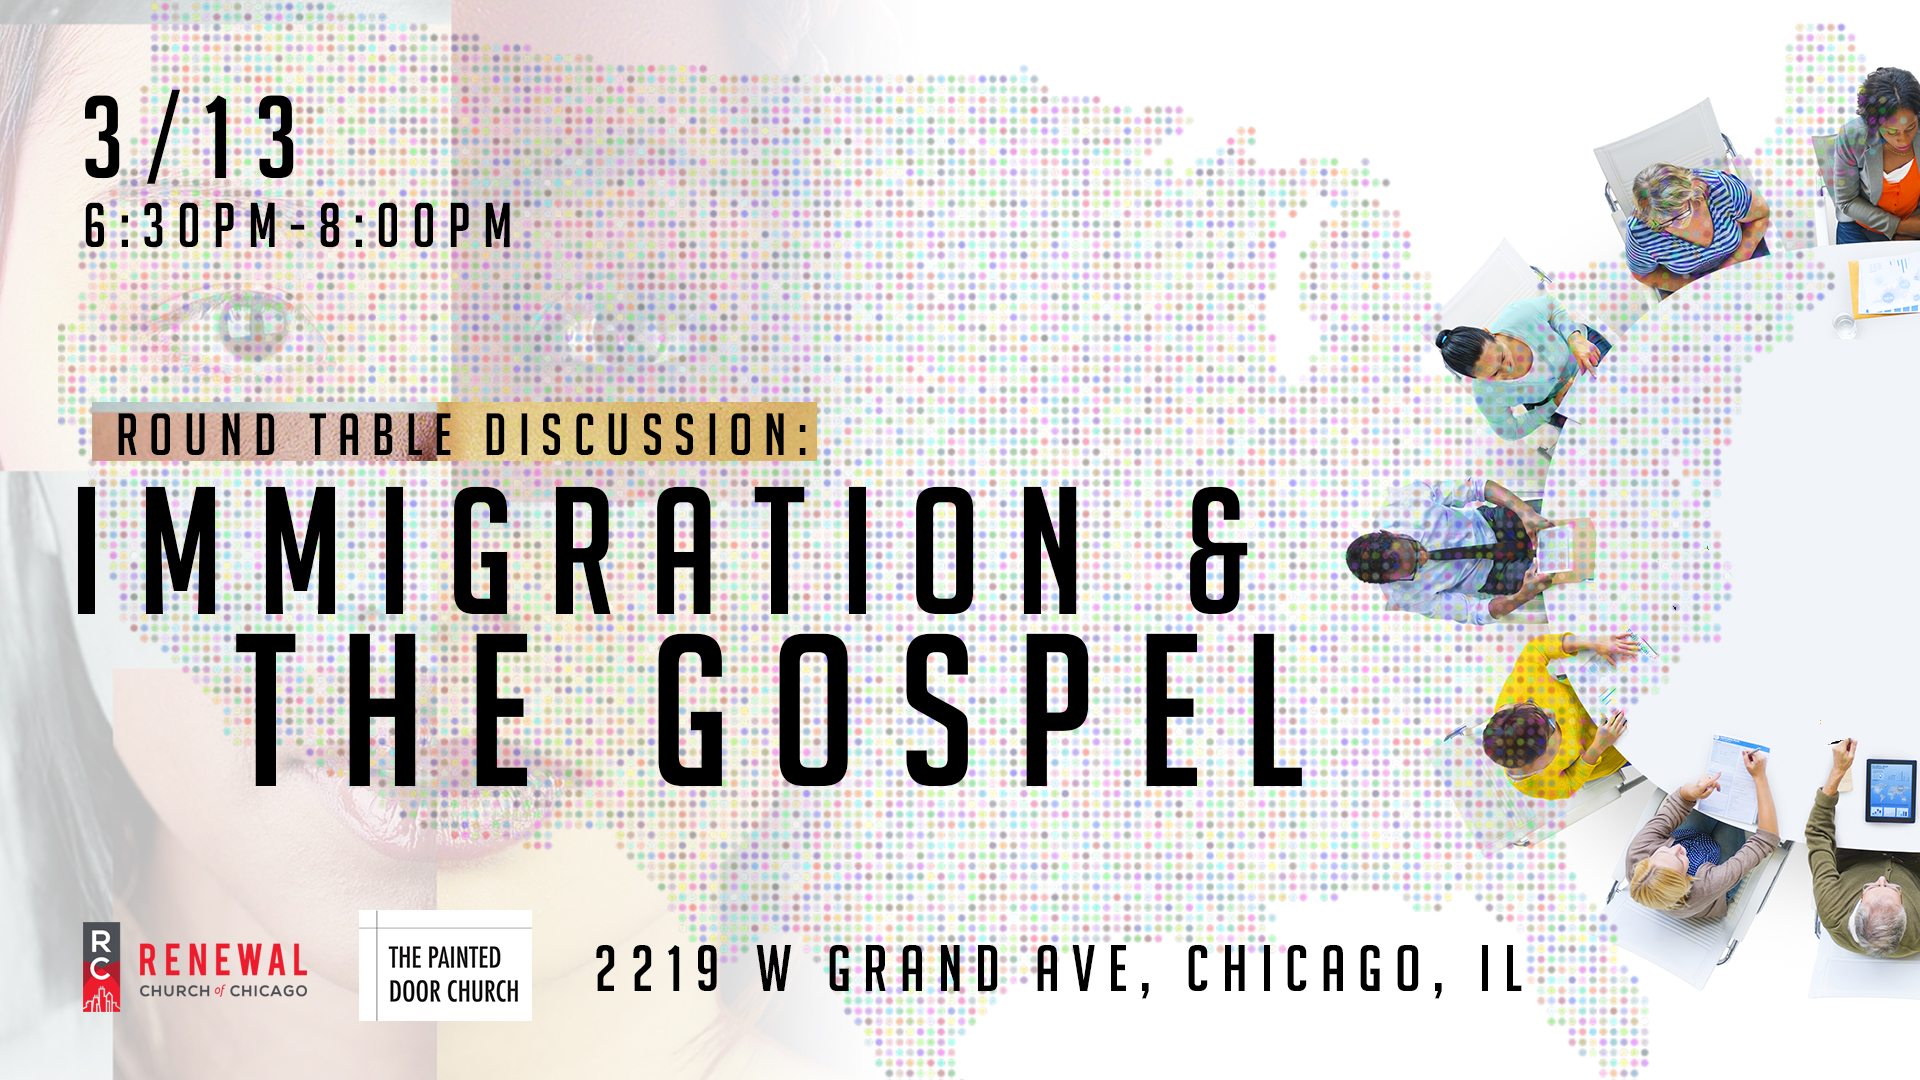 RCC Round Table Discussion Immigration and the gospel.jpg